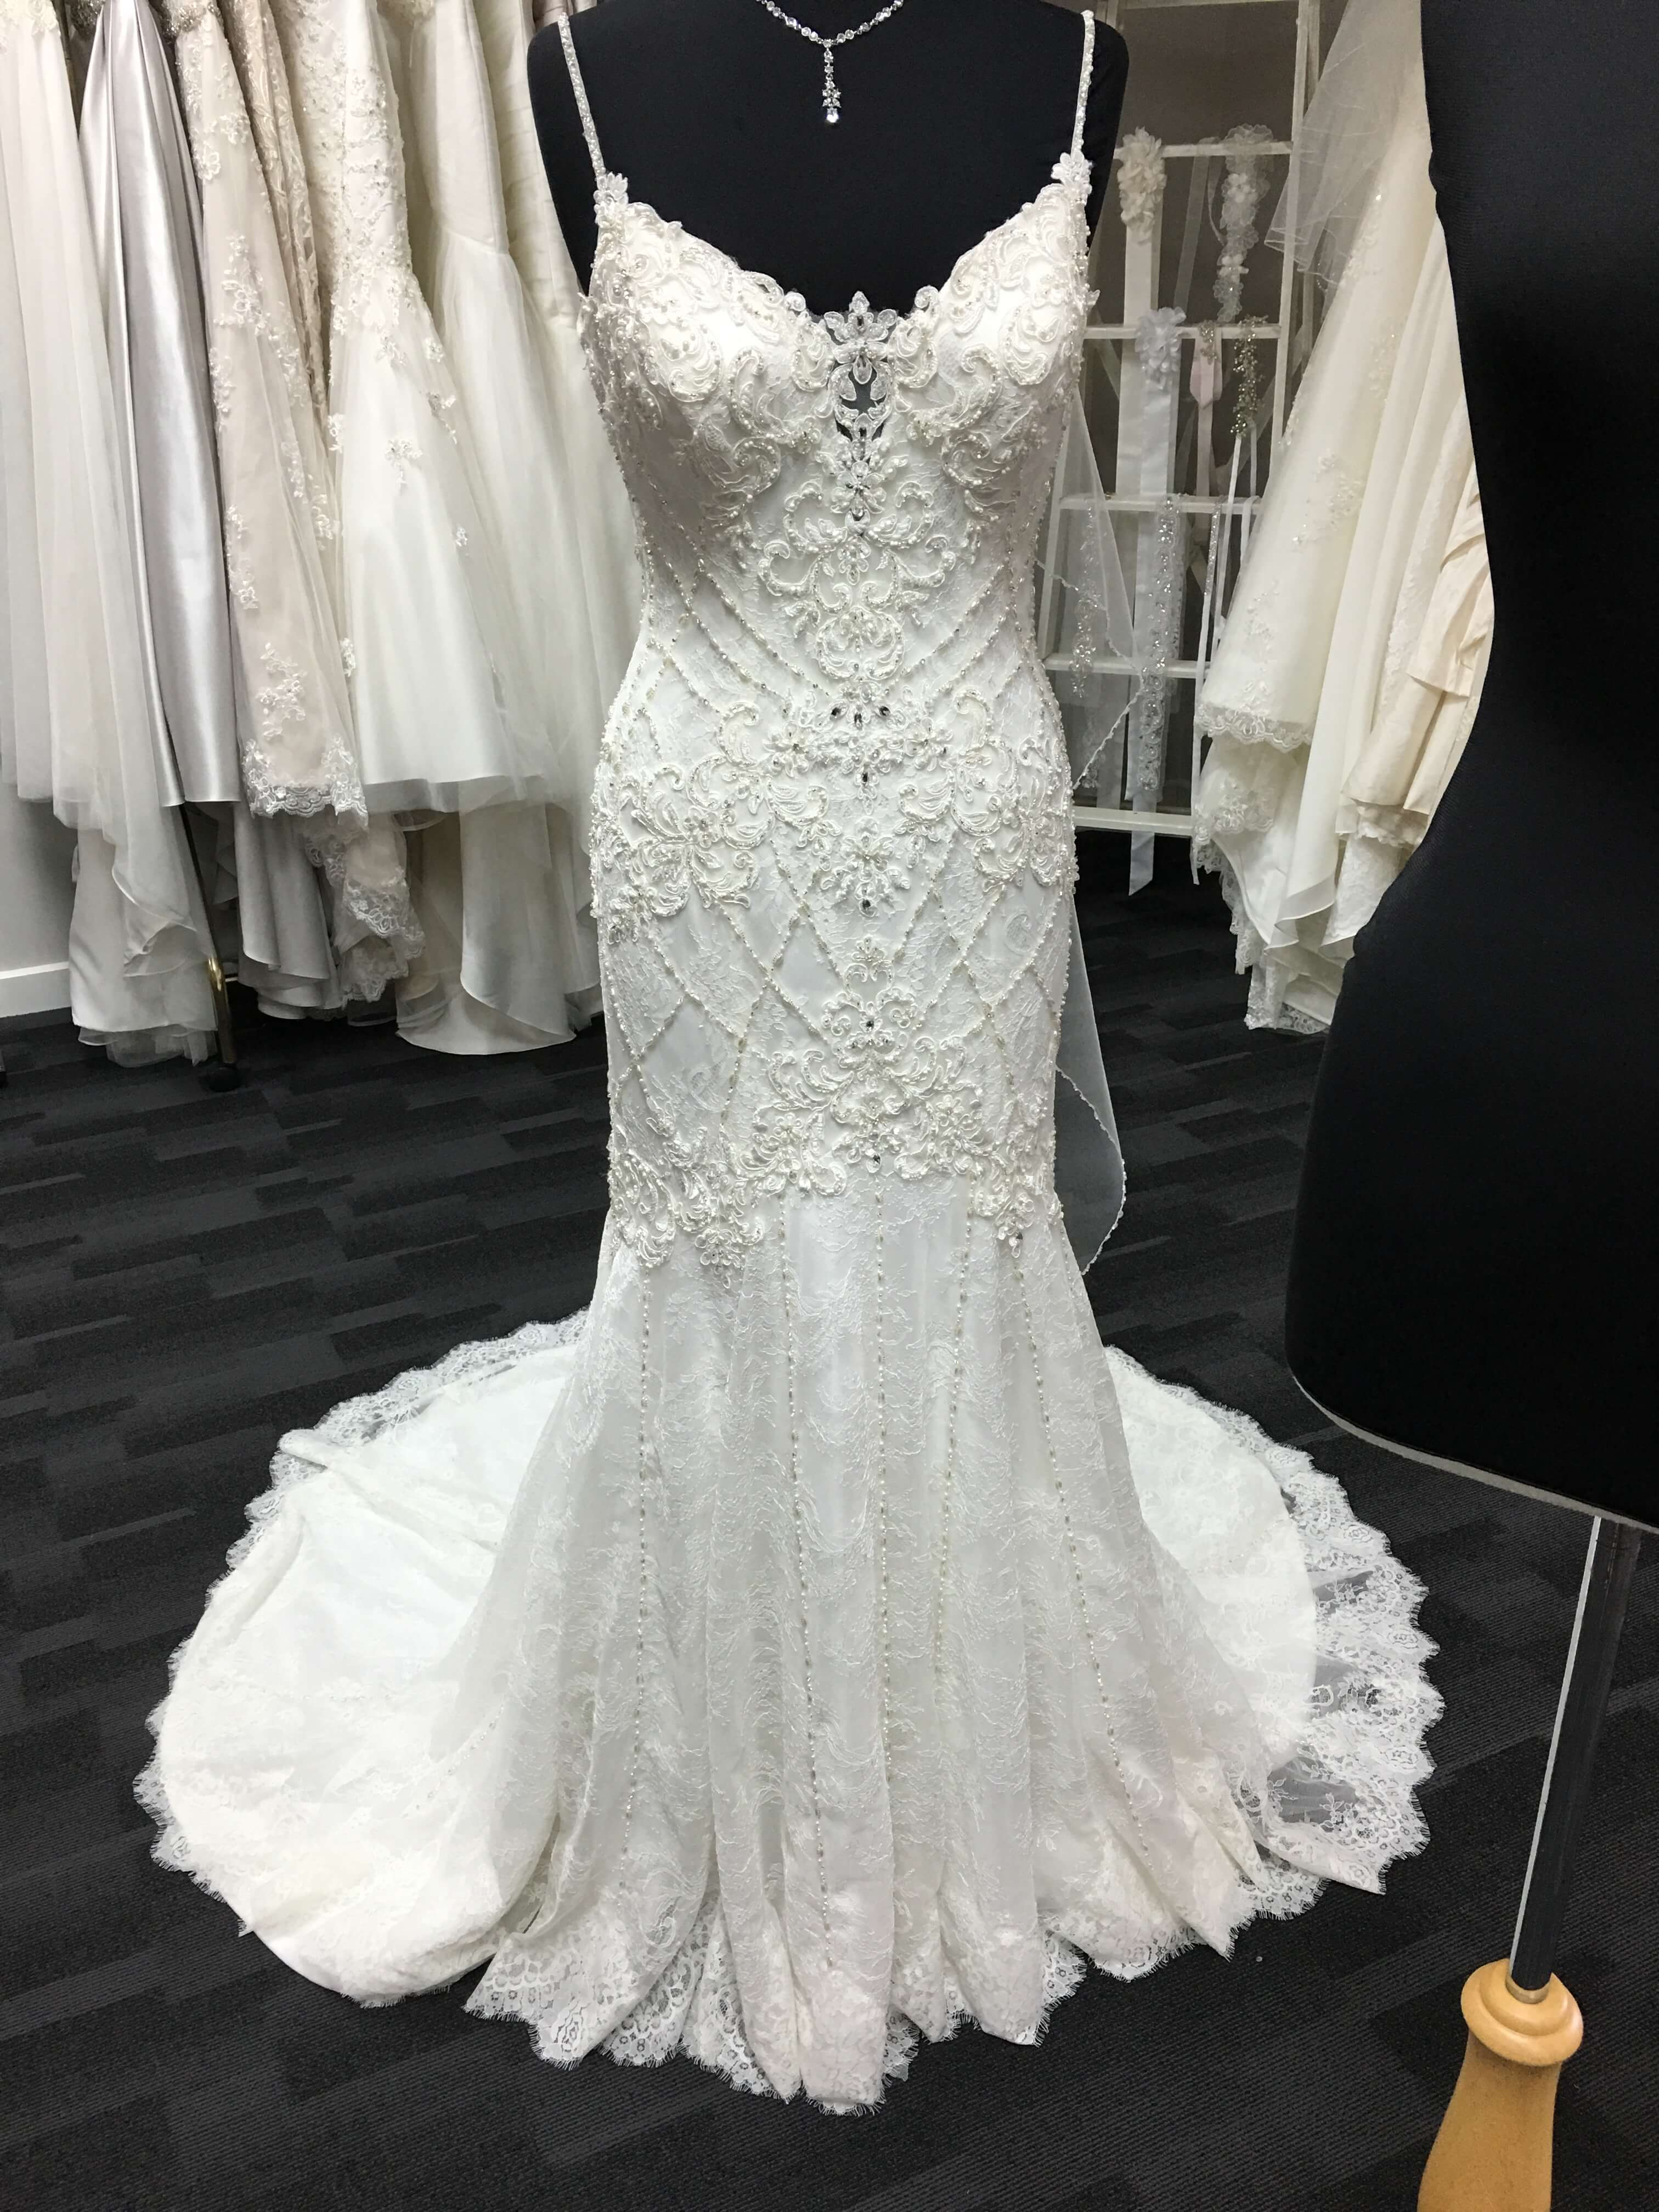 Justin Alexander – Size 12 Fit and Flare dress | Second hand wedding dresses Wonthaggi - Size 12